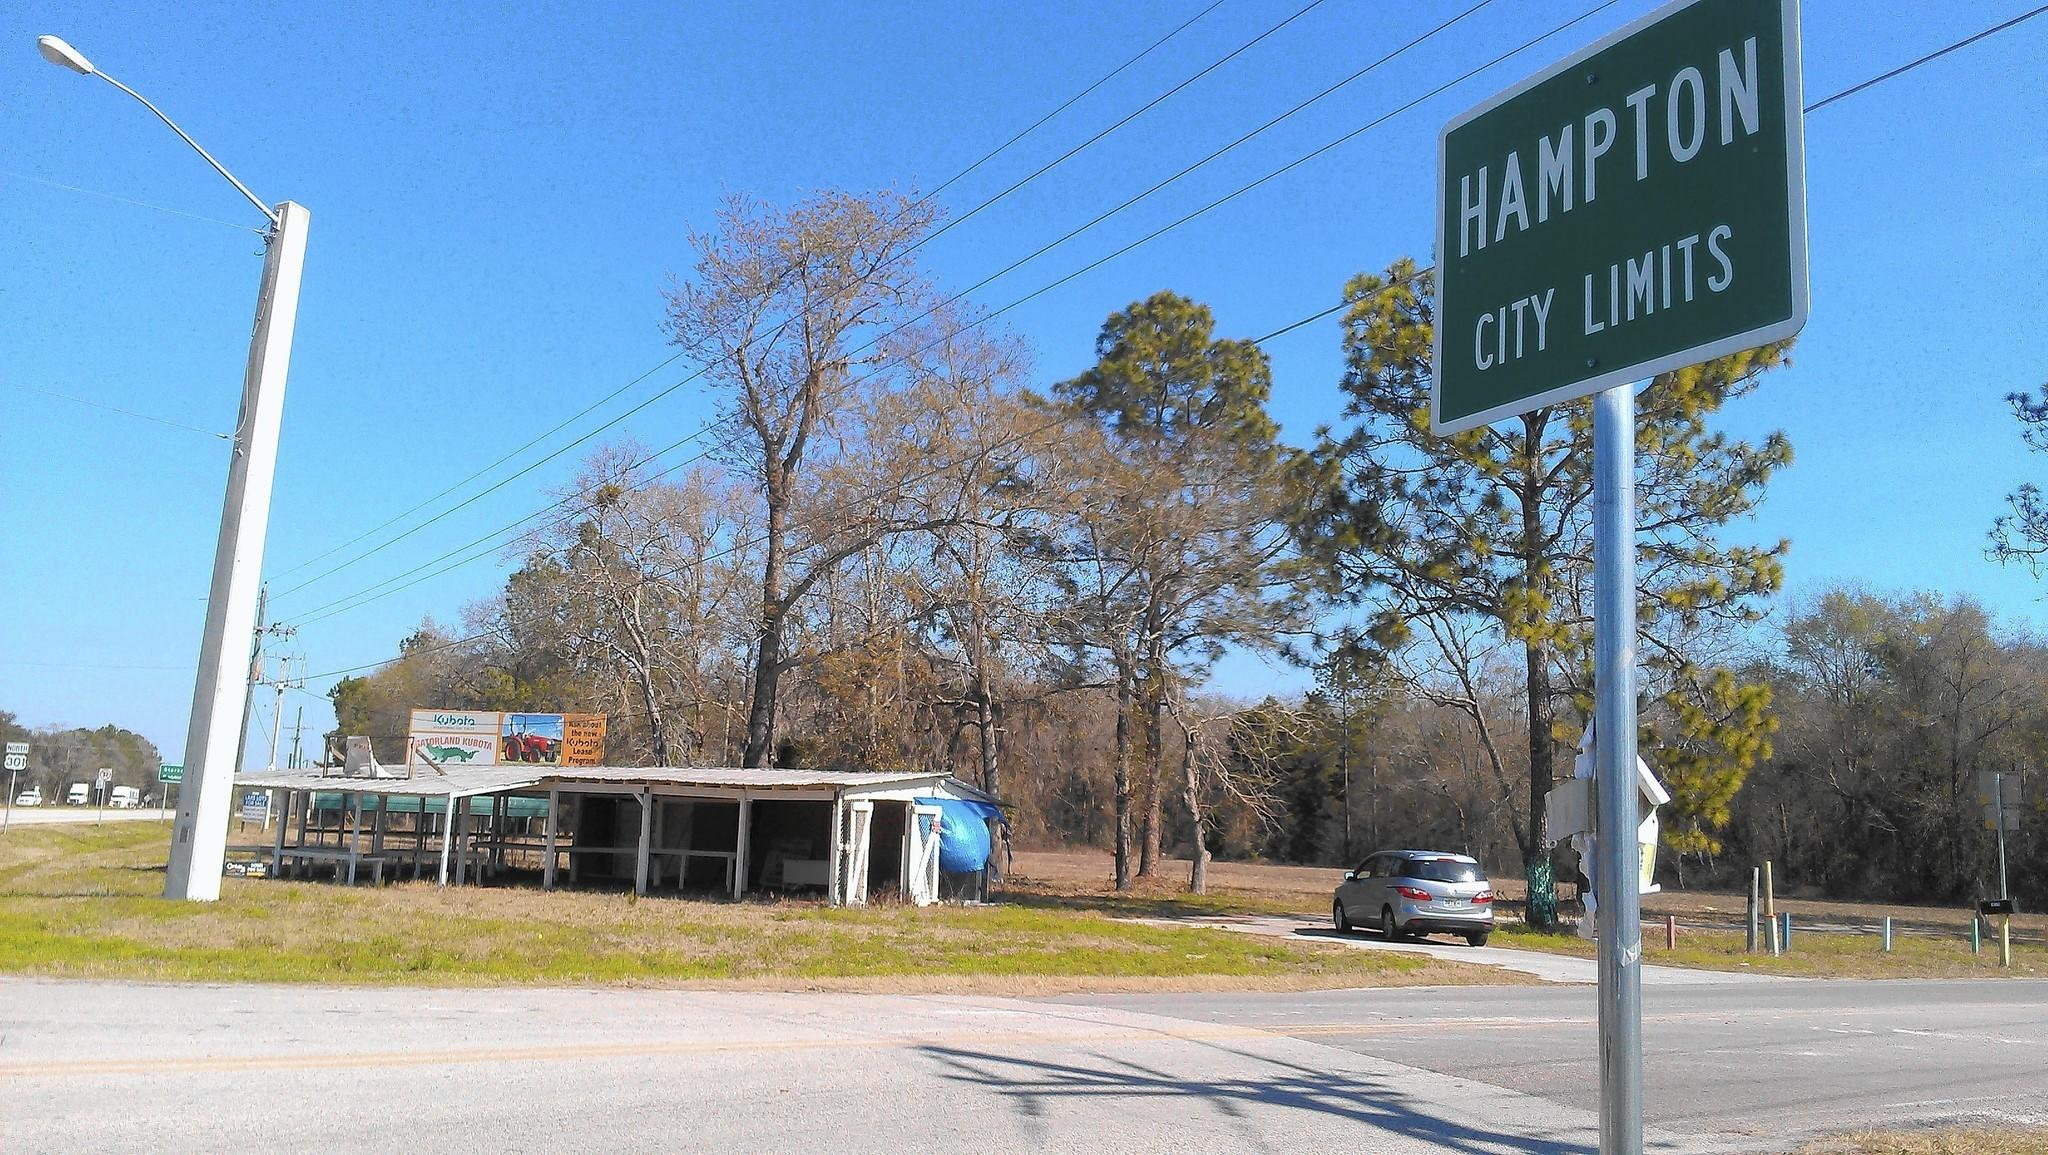 City limits sign of Hampton, the north Florida town that the Legislature is planning to dissolve this spring